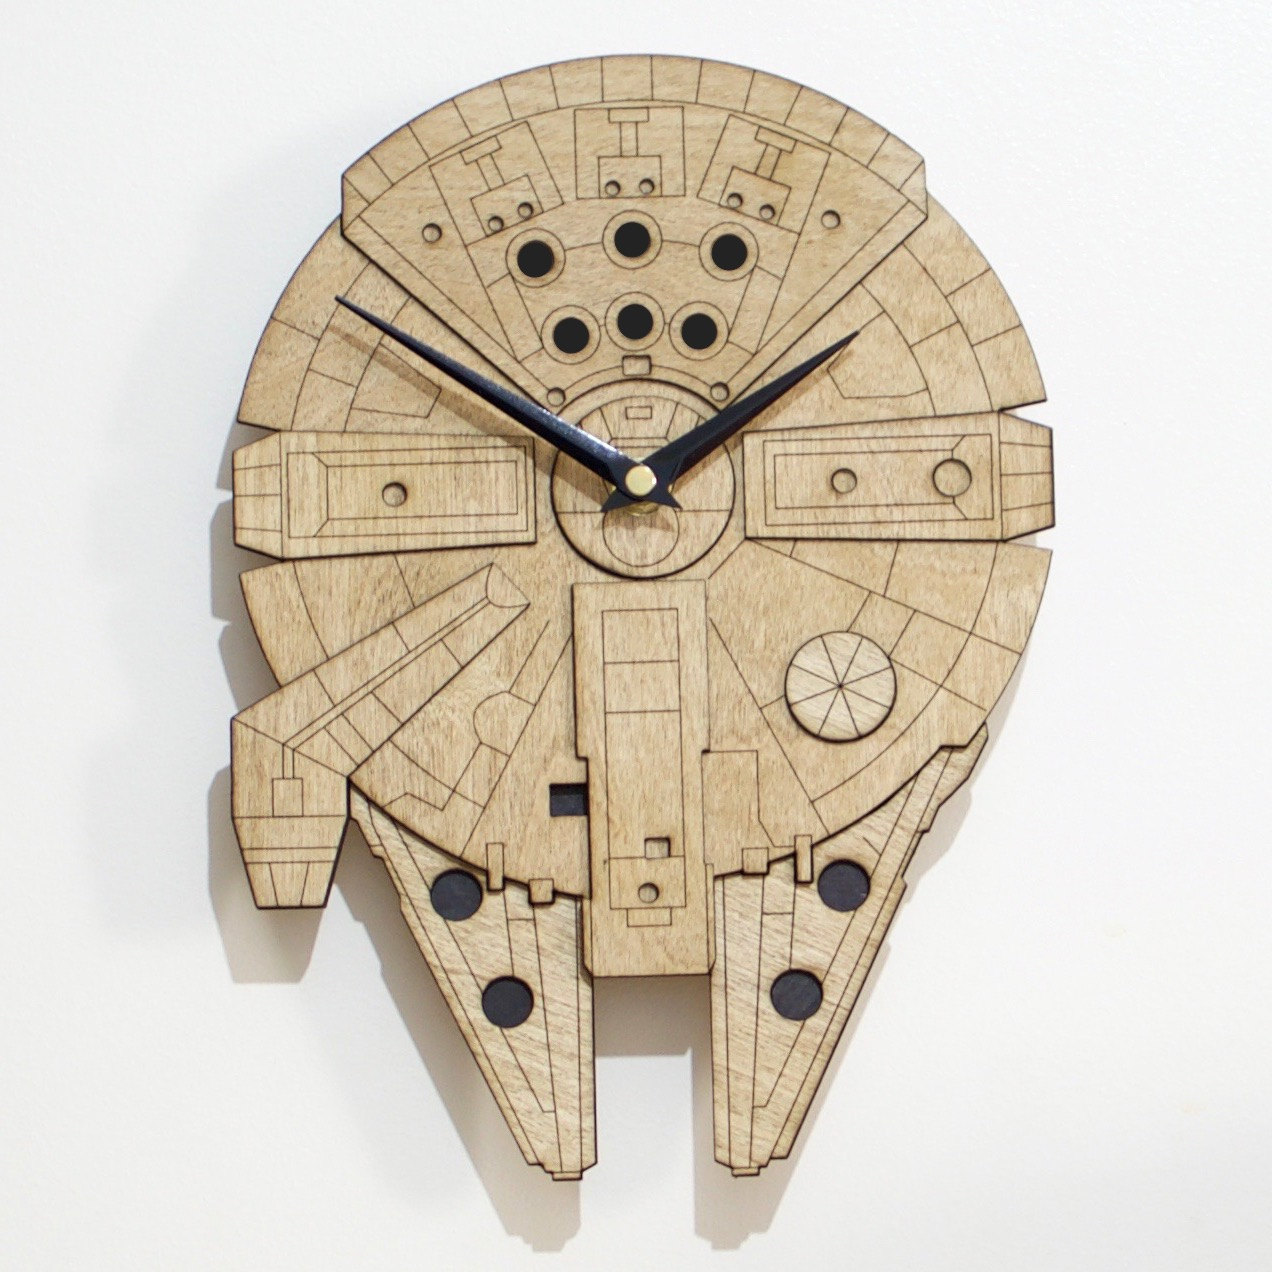 Laser-cut, wall-mounted Millennium Falcon clock / Boing Boing